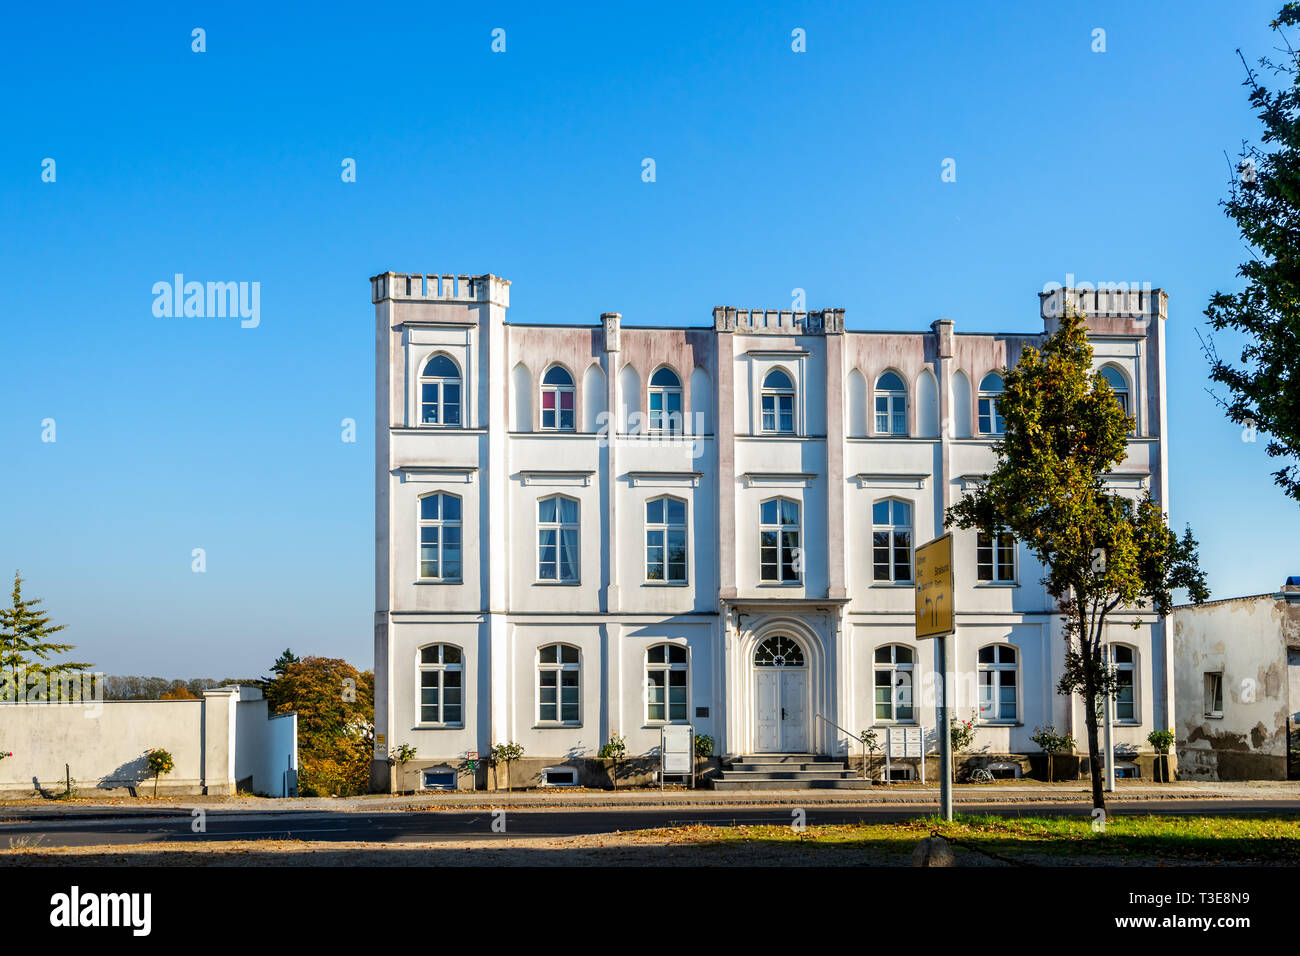 Putbus on Island Ruegen, Germany Stock Photo